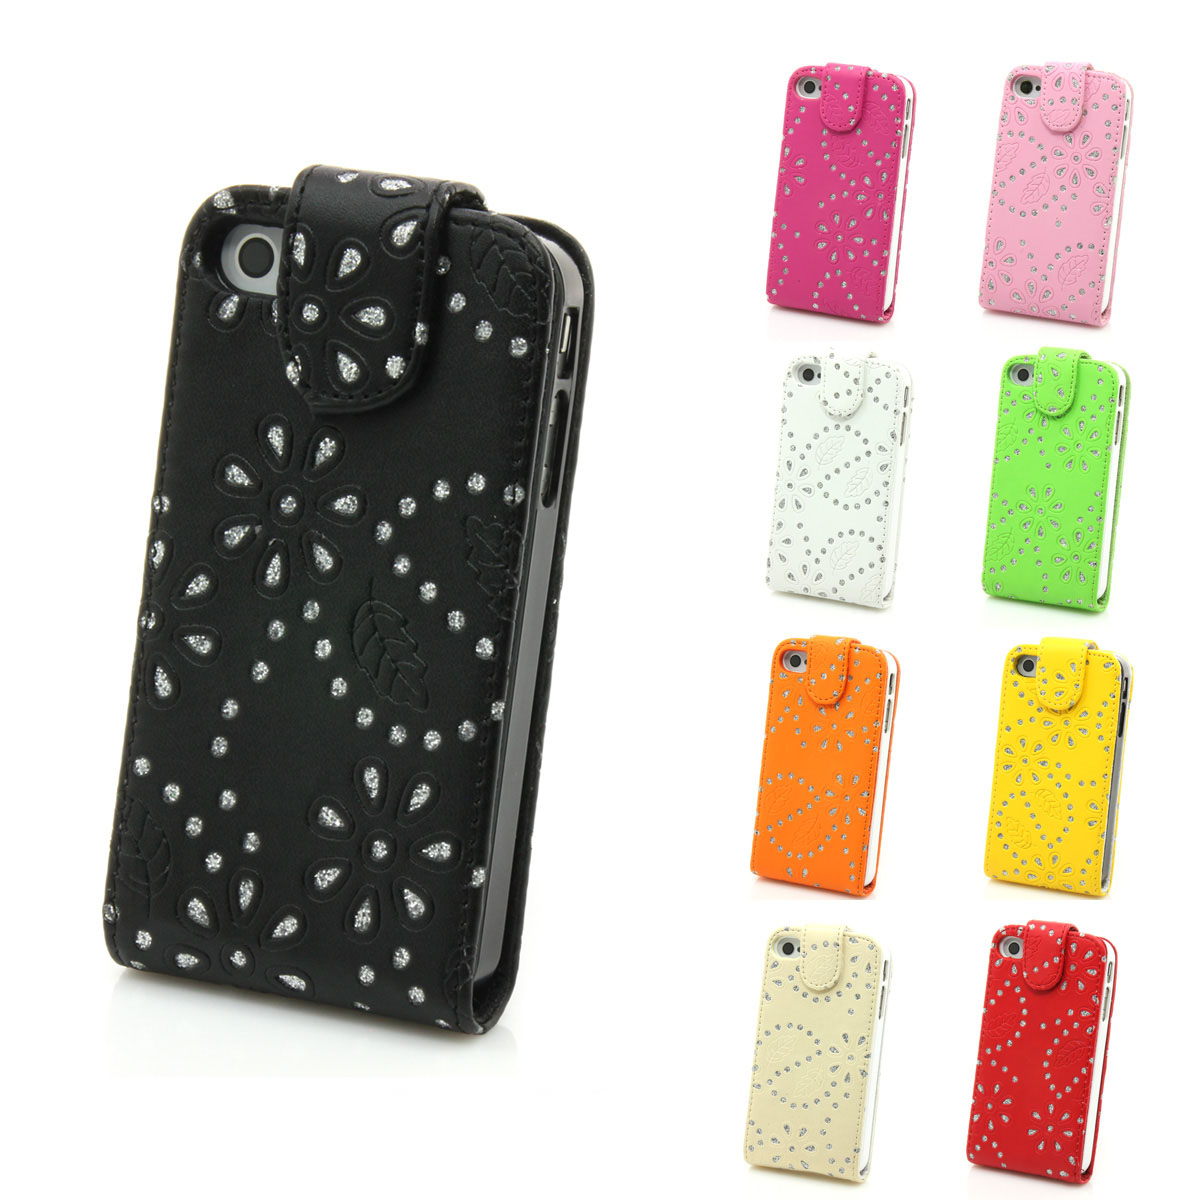 iphone 4 4s echt leder tasche glitzer h lle case. Black Bedroom Furniture Sets. Home Design Ideas